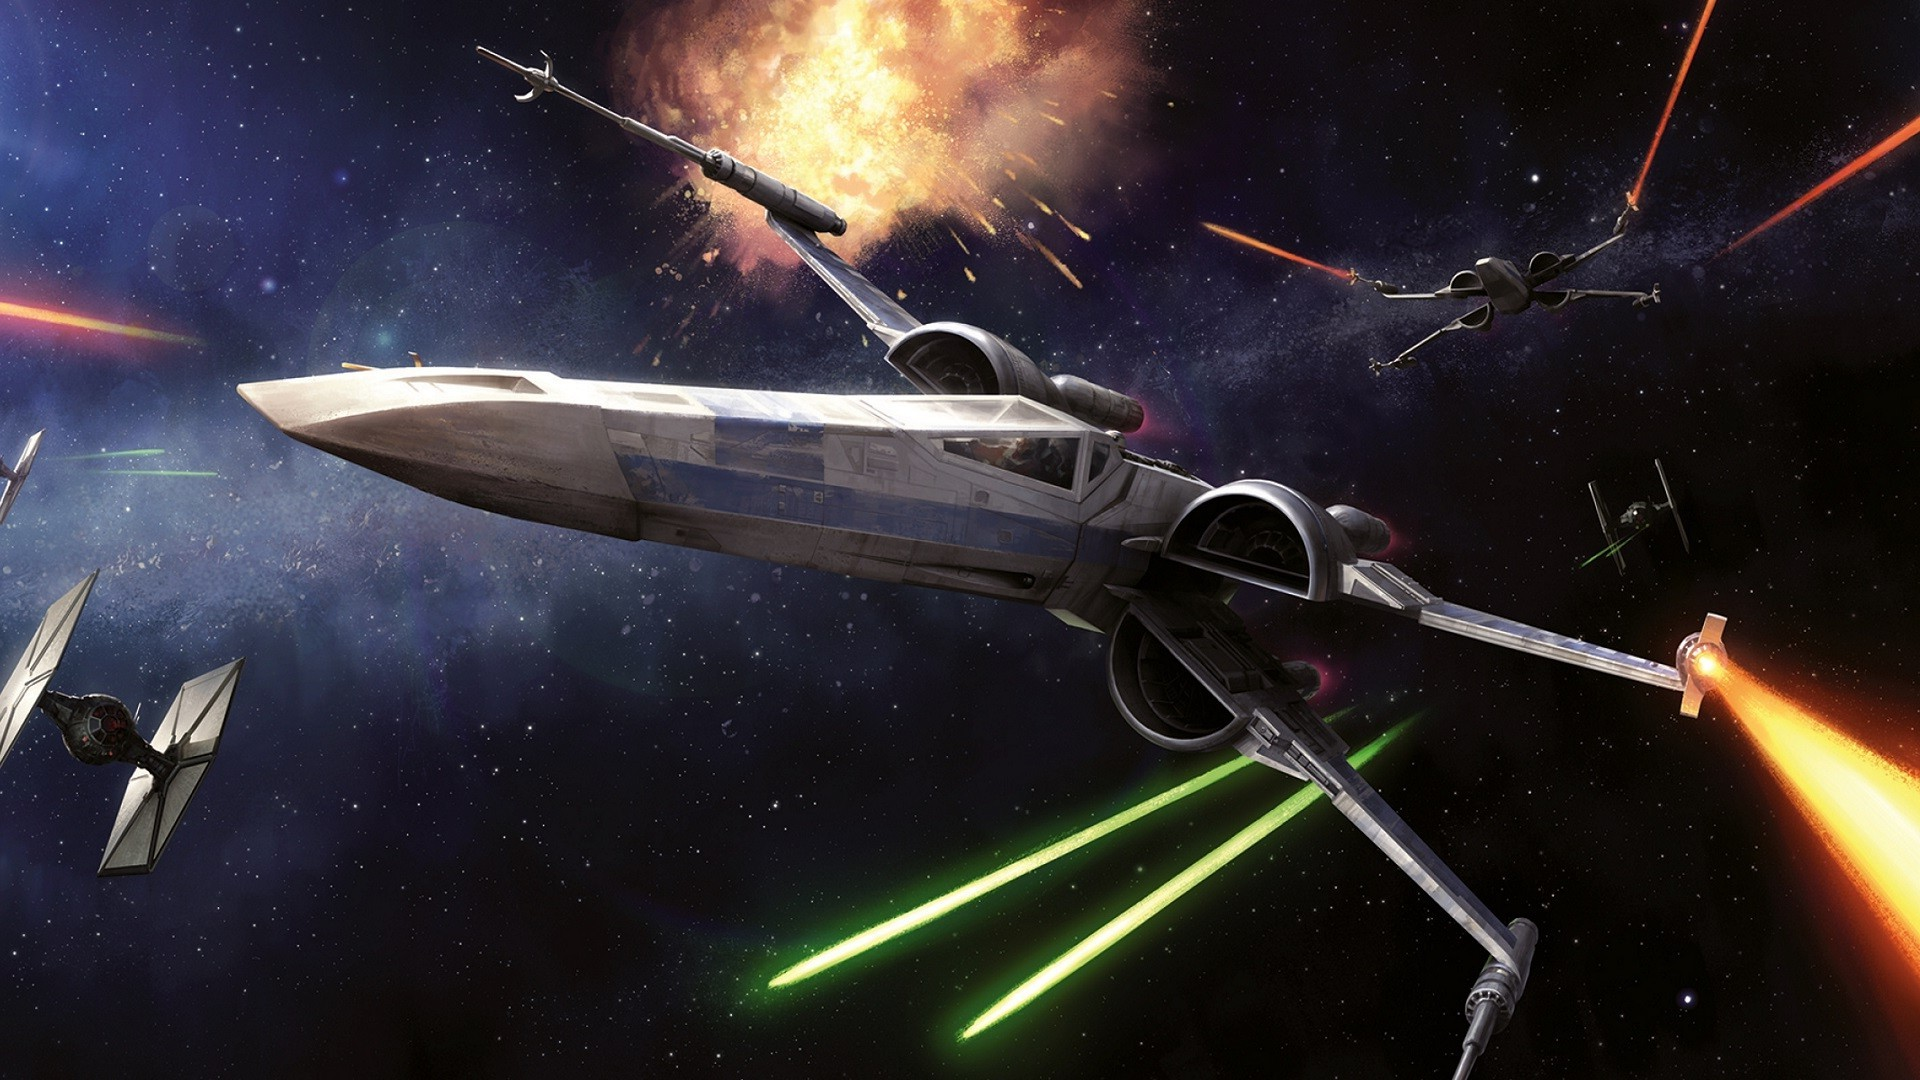 1920x1080 Star Wars, Space, Spaceship, X wing, Laser, Lasers, Science Fiction